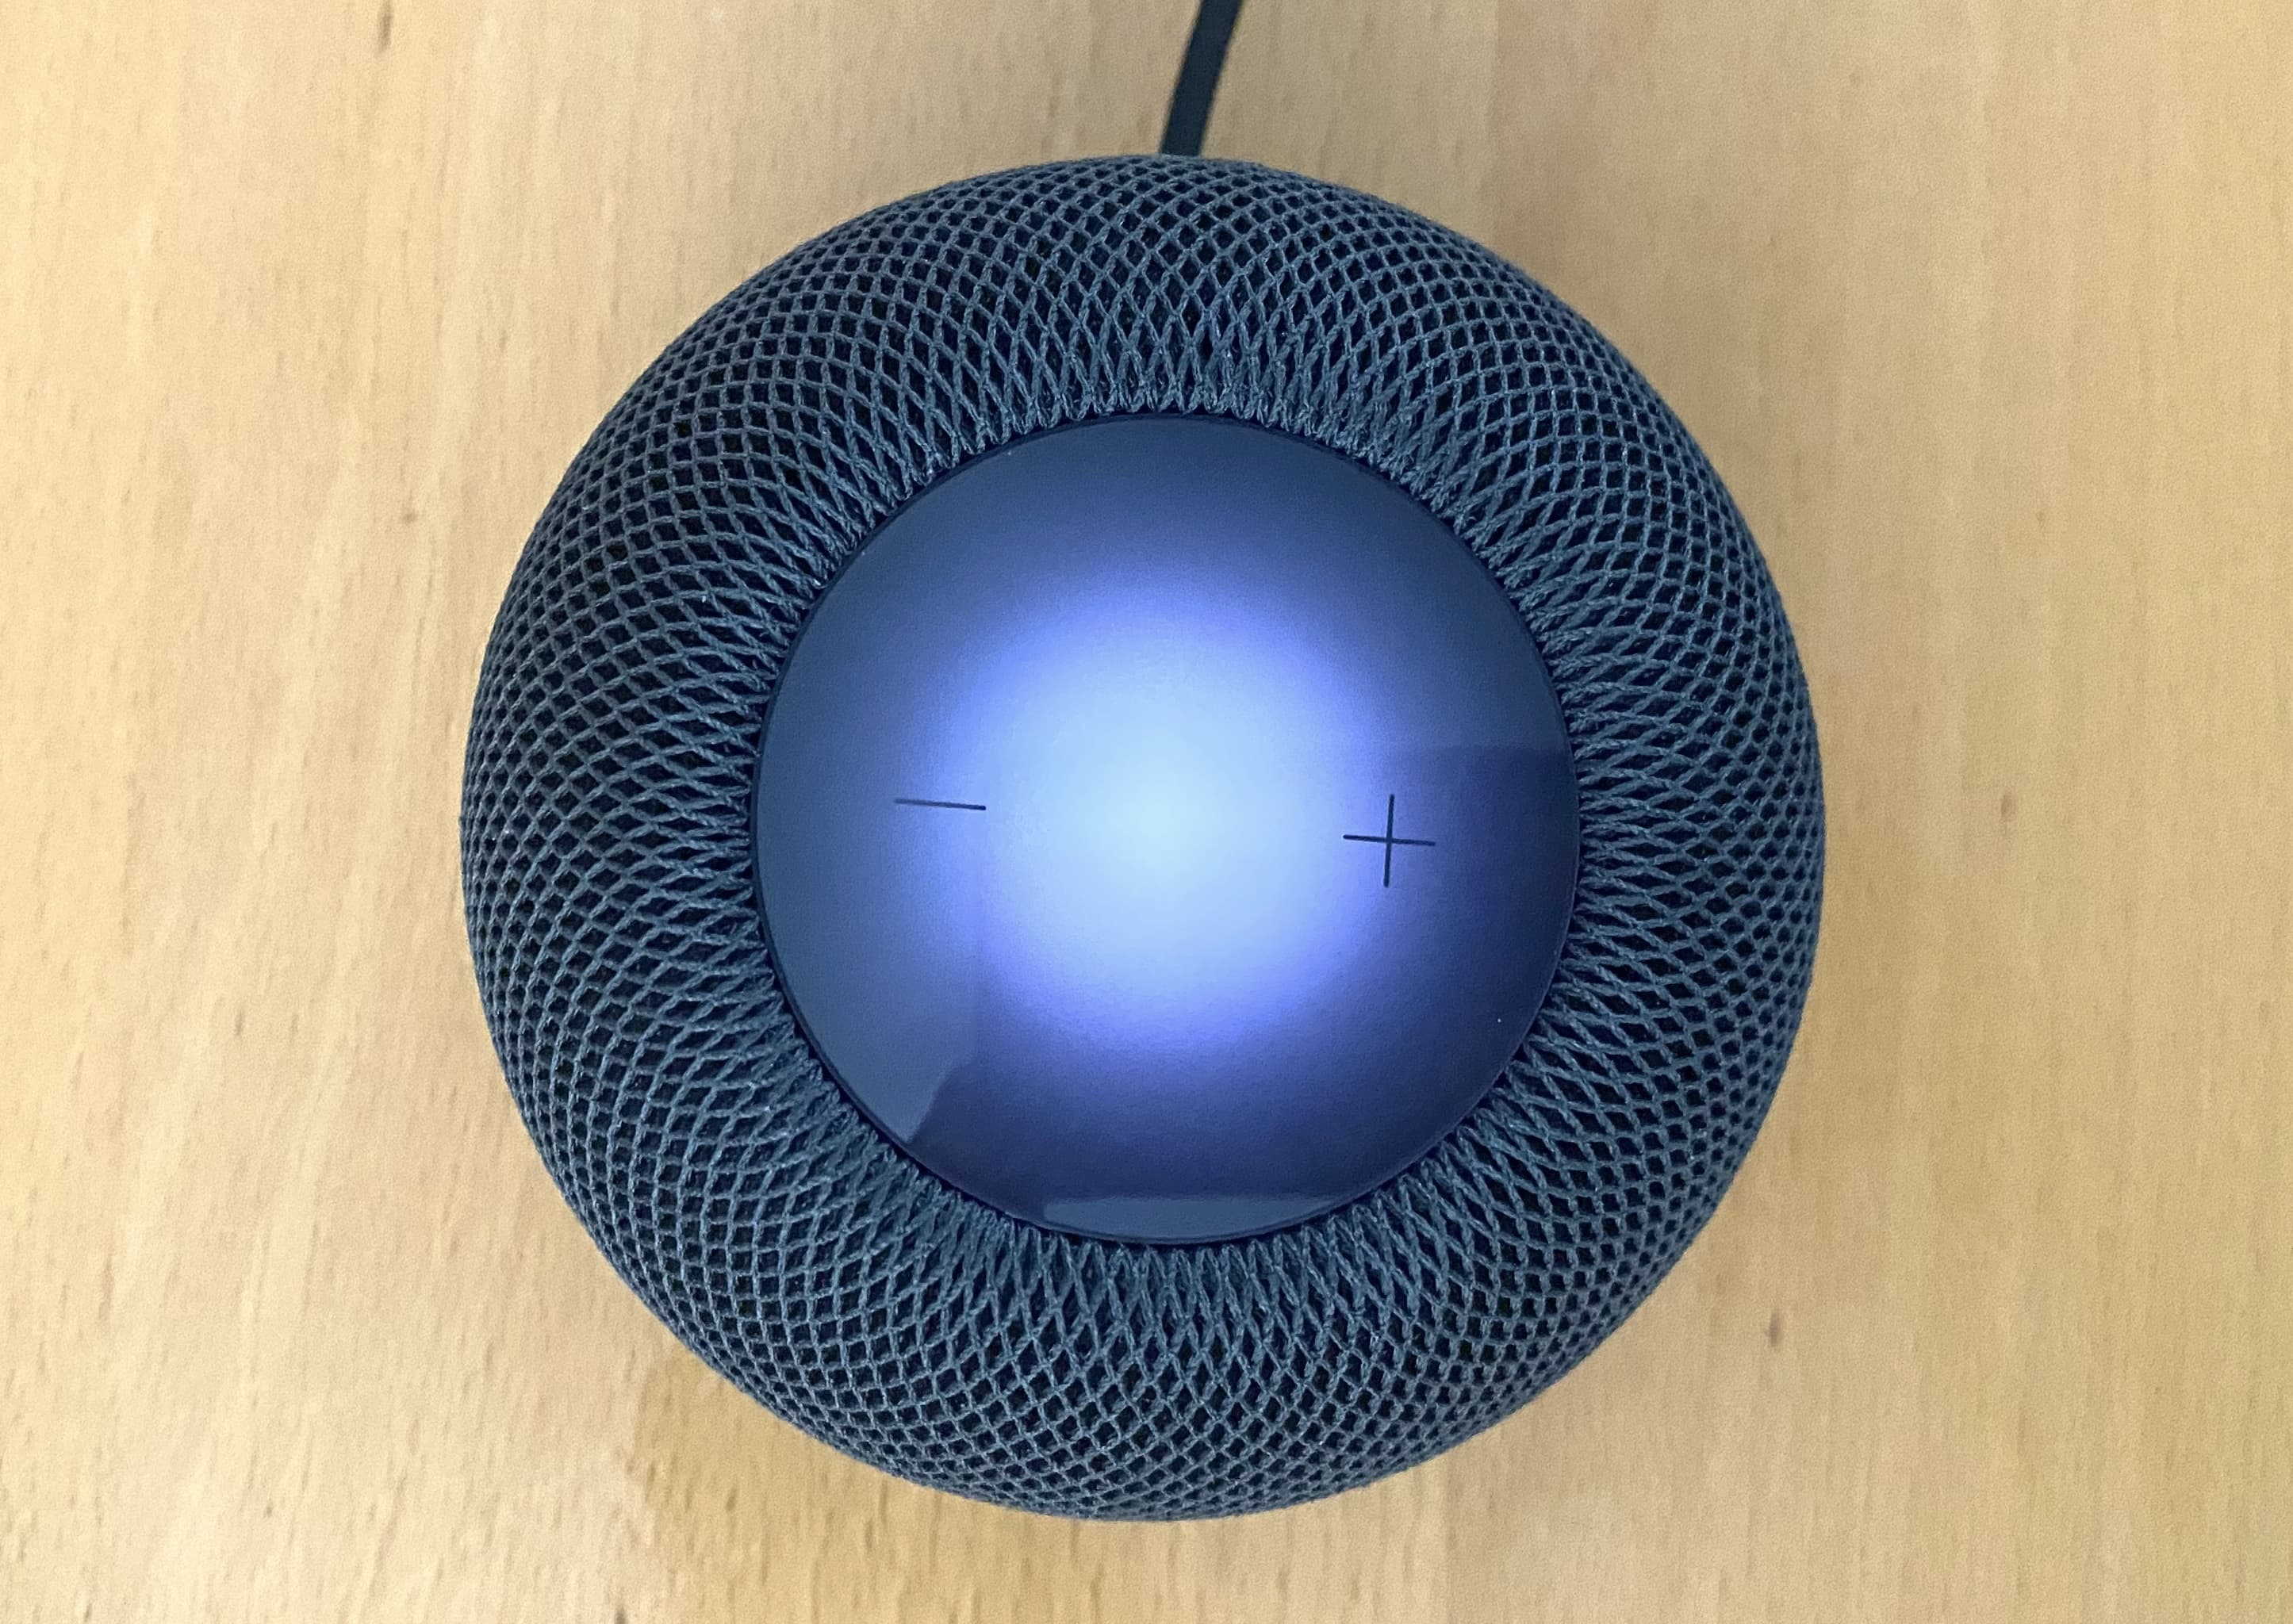 Get a pair. Of HomePods that is.